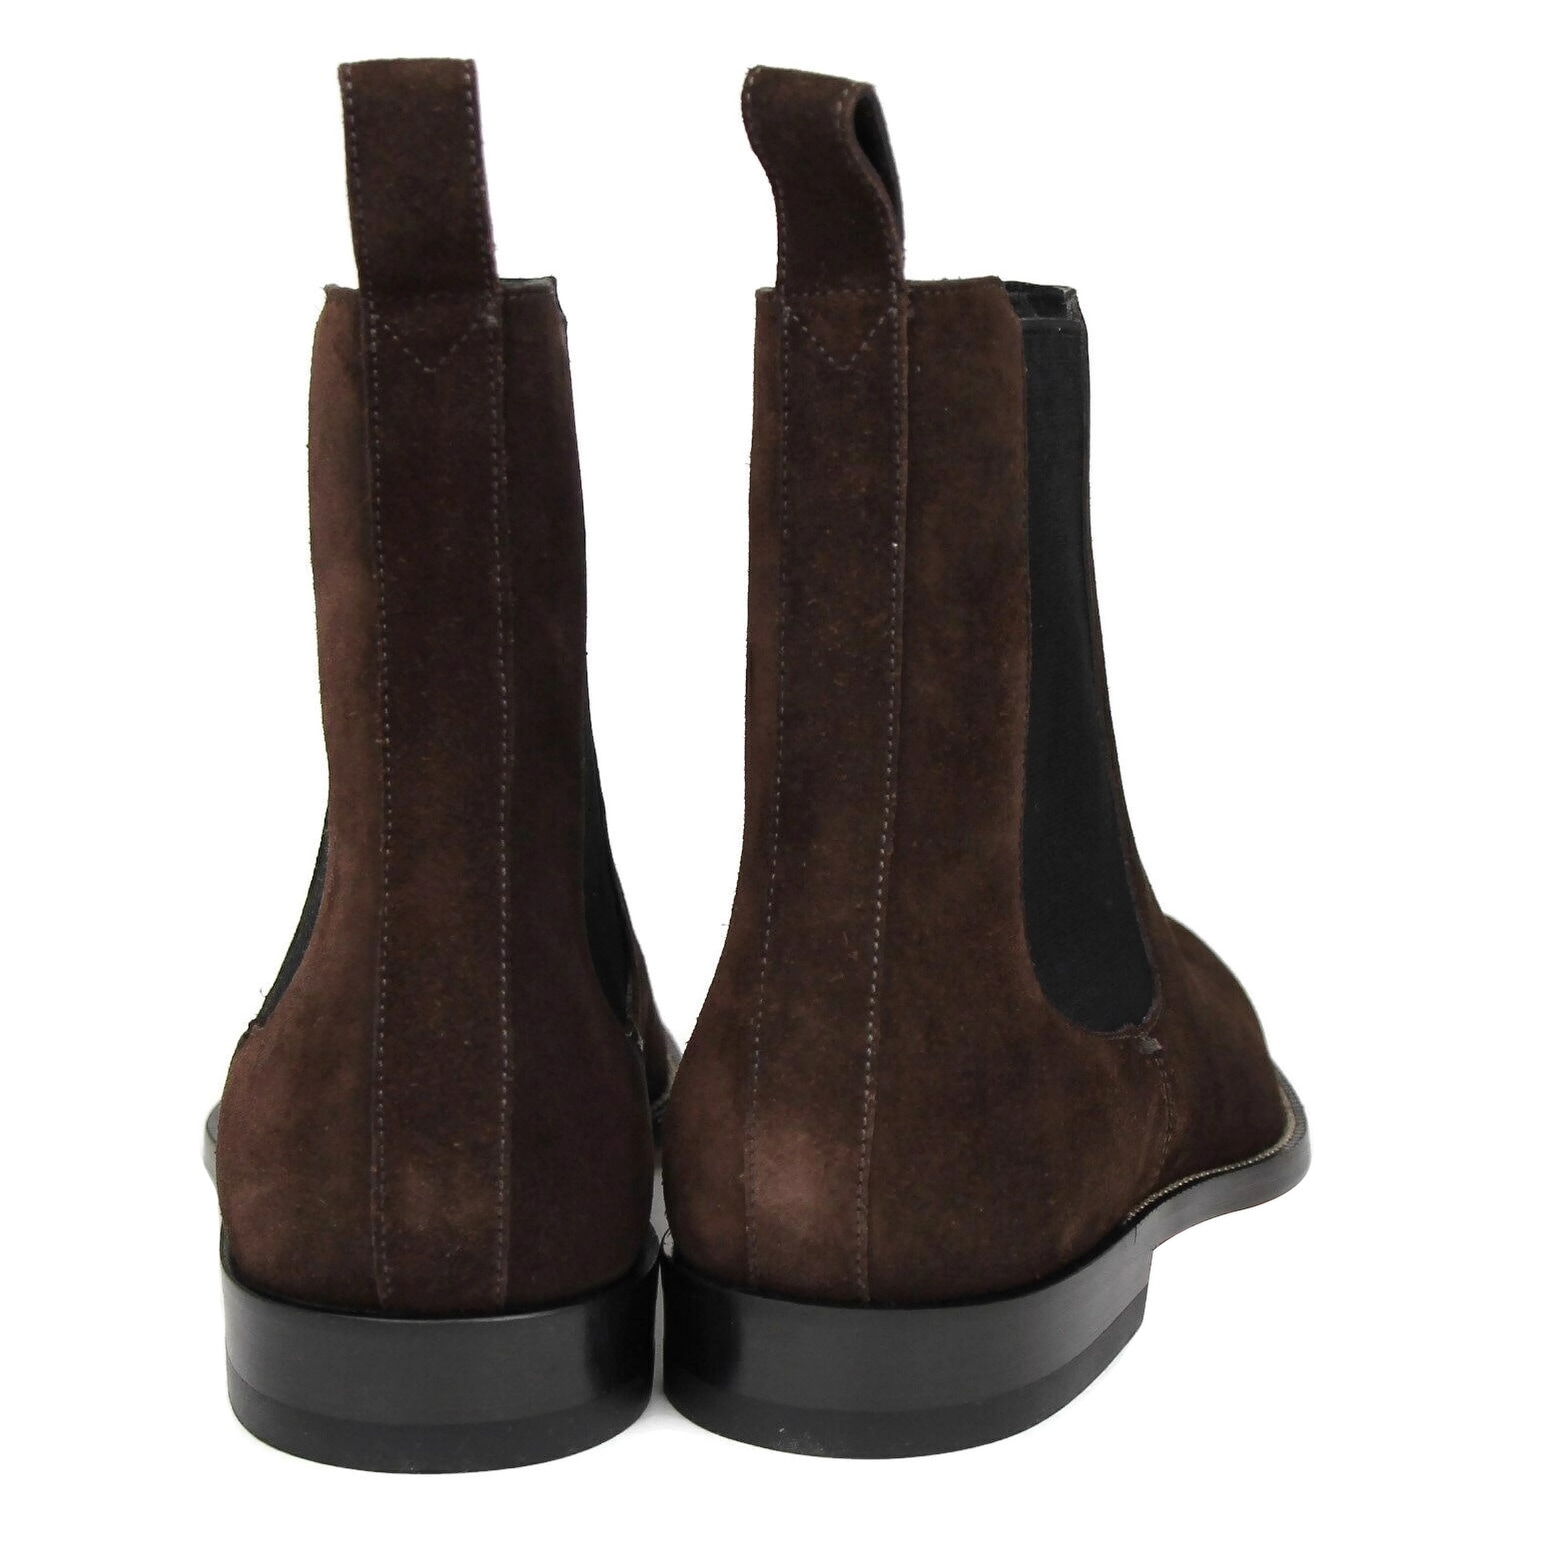 3318fffc0 Shop Gucci Men's Dark Brown Suede Chelsea Boot with Elastic Sides 256346  2145 (9.5 G / 10.5 US) - 9.5 G / 10.5 US - Free Shipping Today - Overstock  - ...